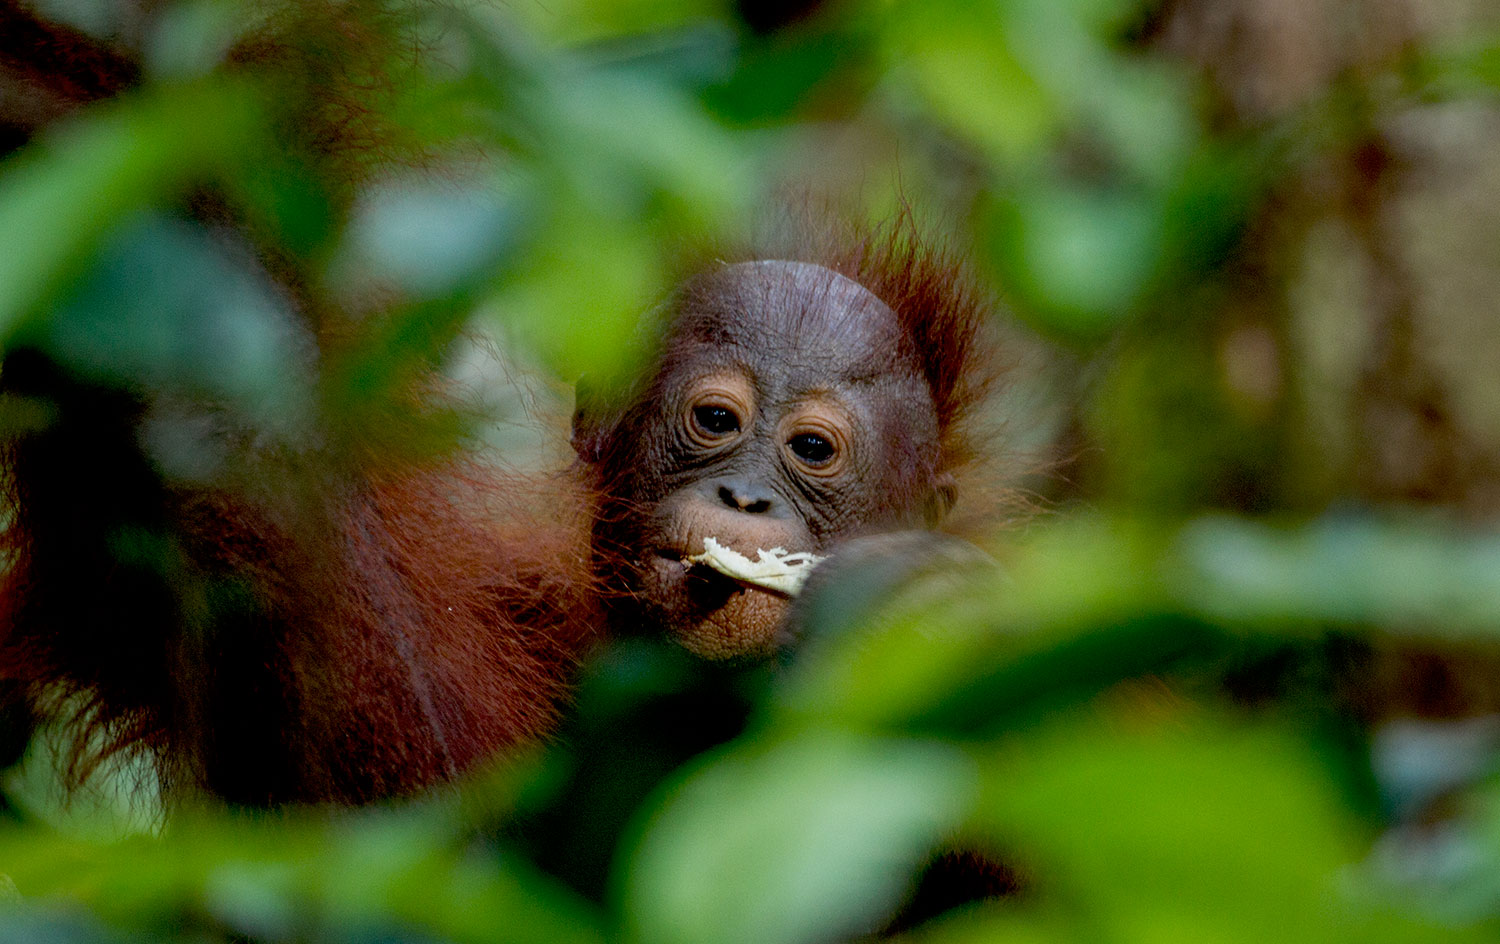 Can COVID19 affect Orangutans?